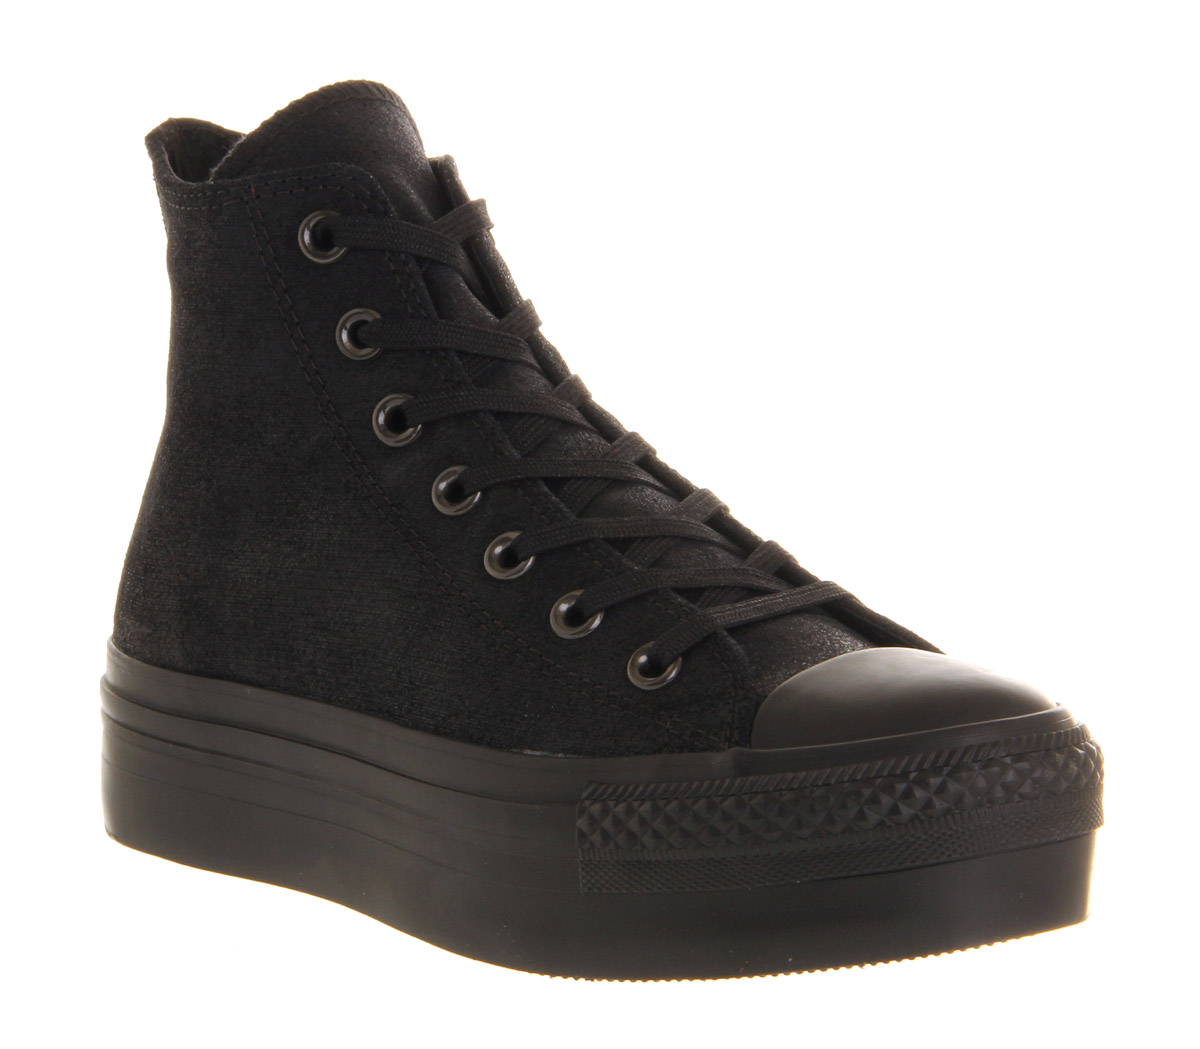 Converse all star hi platform black satin trainers shoes